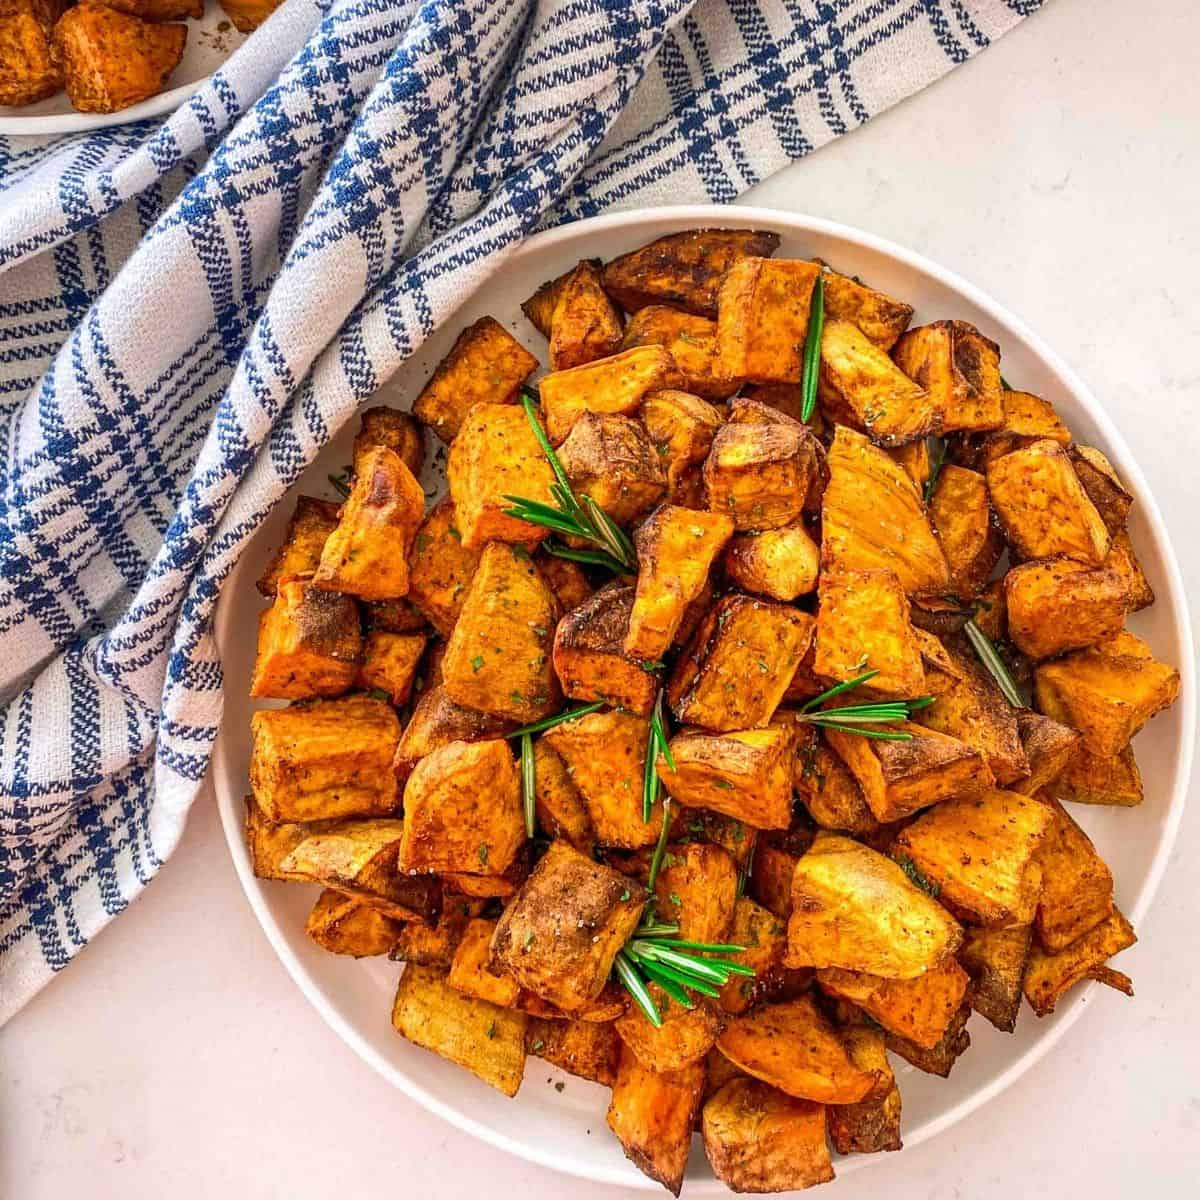 White plate with cubed sweet potatoes and rosemary garnish.